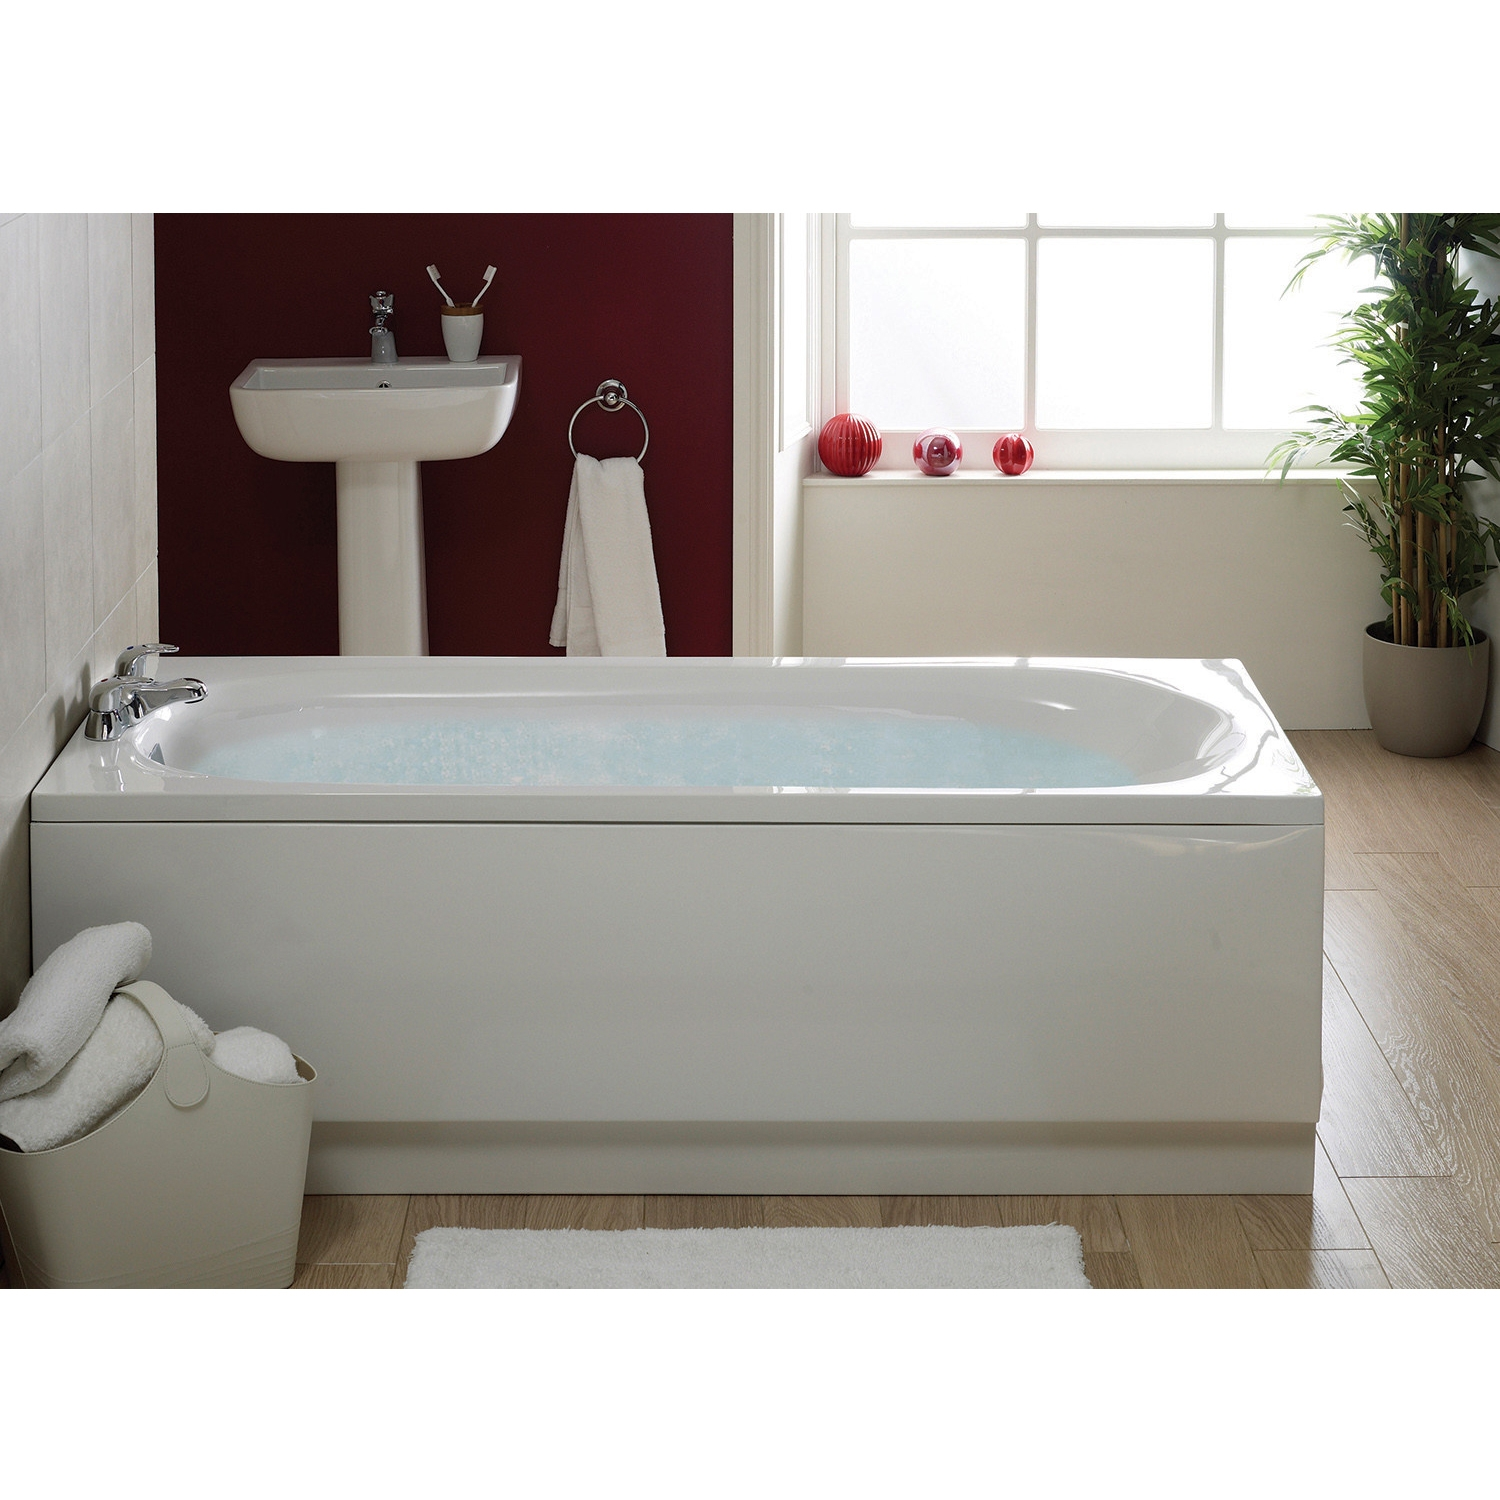 Verona Caymen Single Ended Rectangular Bath 1600mm x 700mm - 0 Tap Hole-1